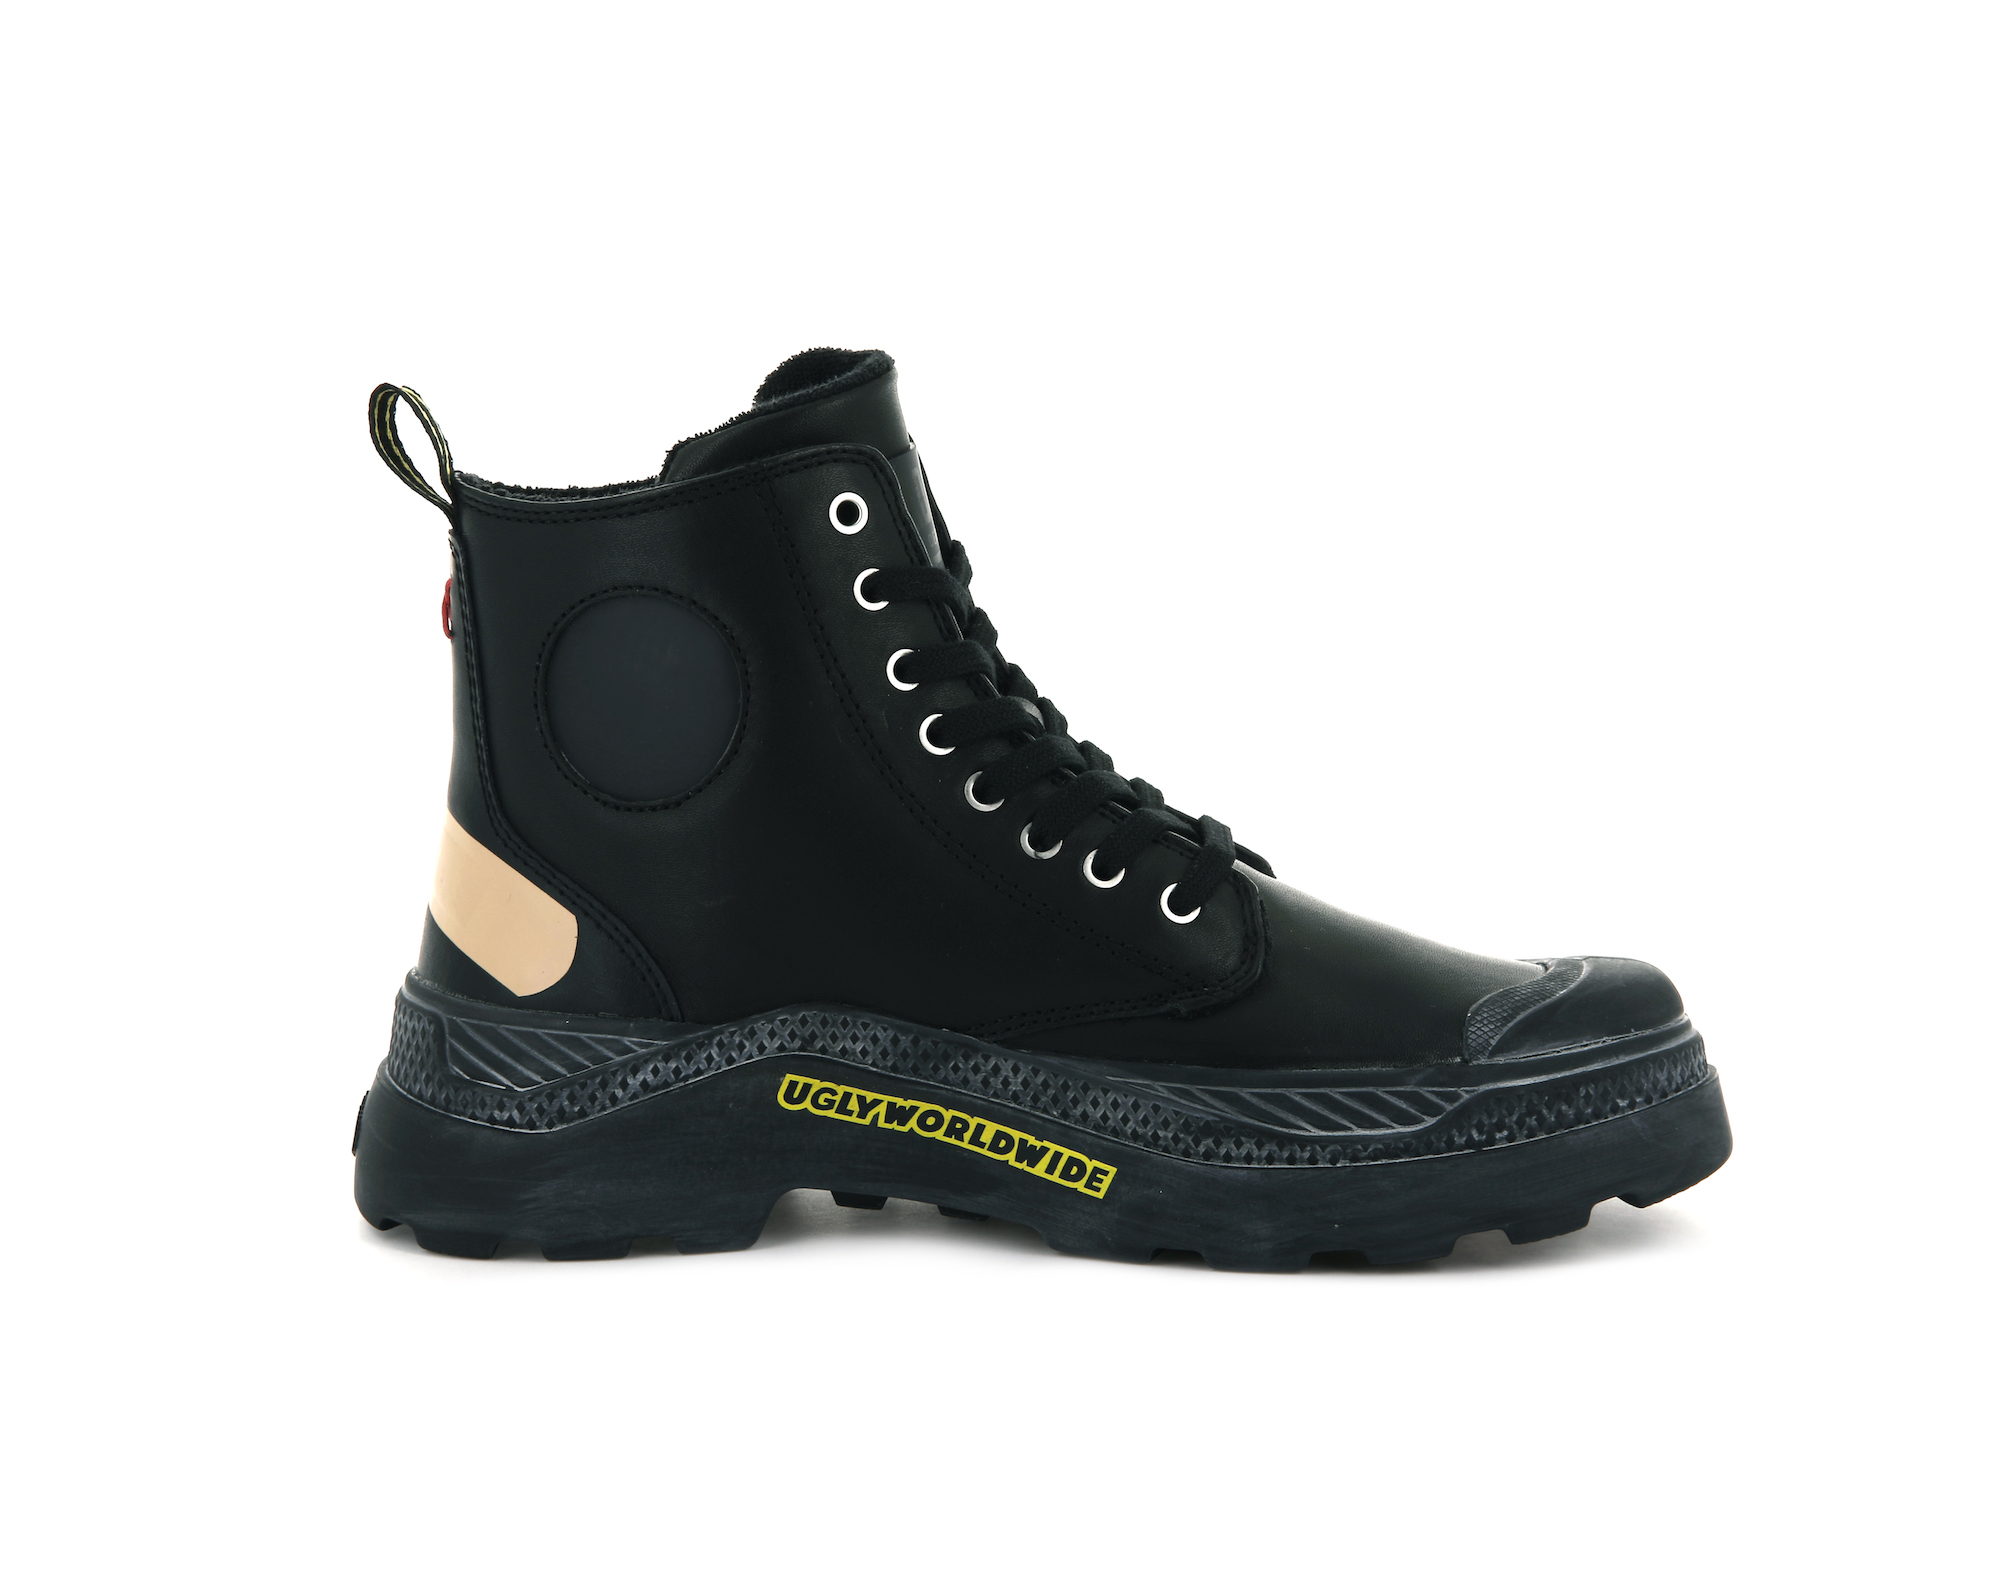 Palladium x Ugly Worldwide black boots